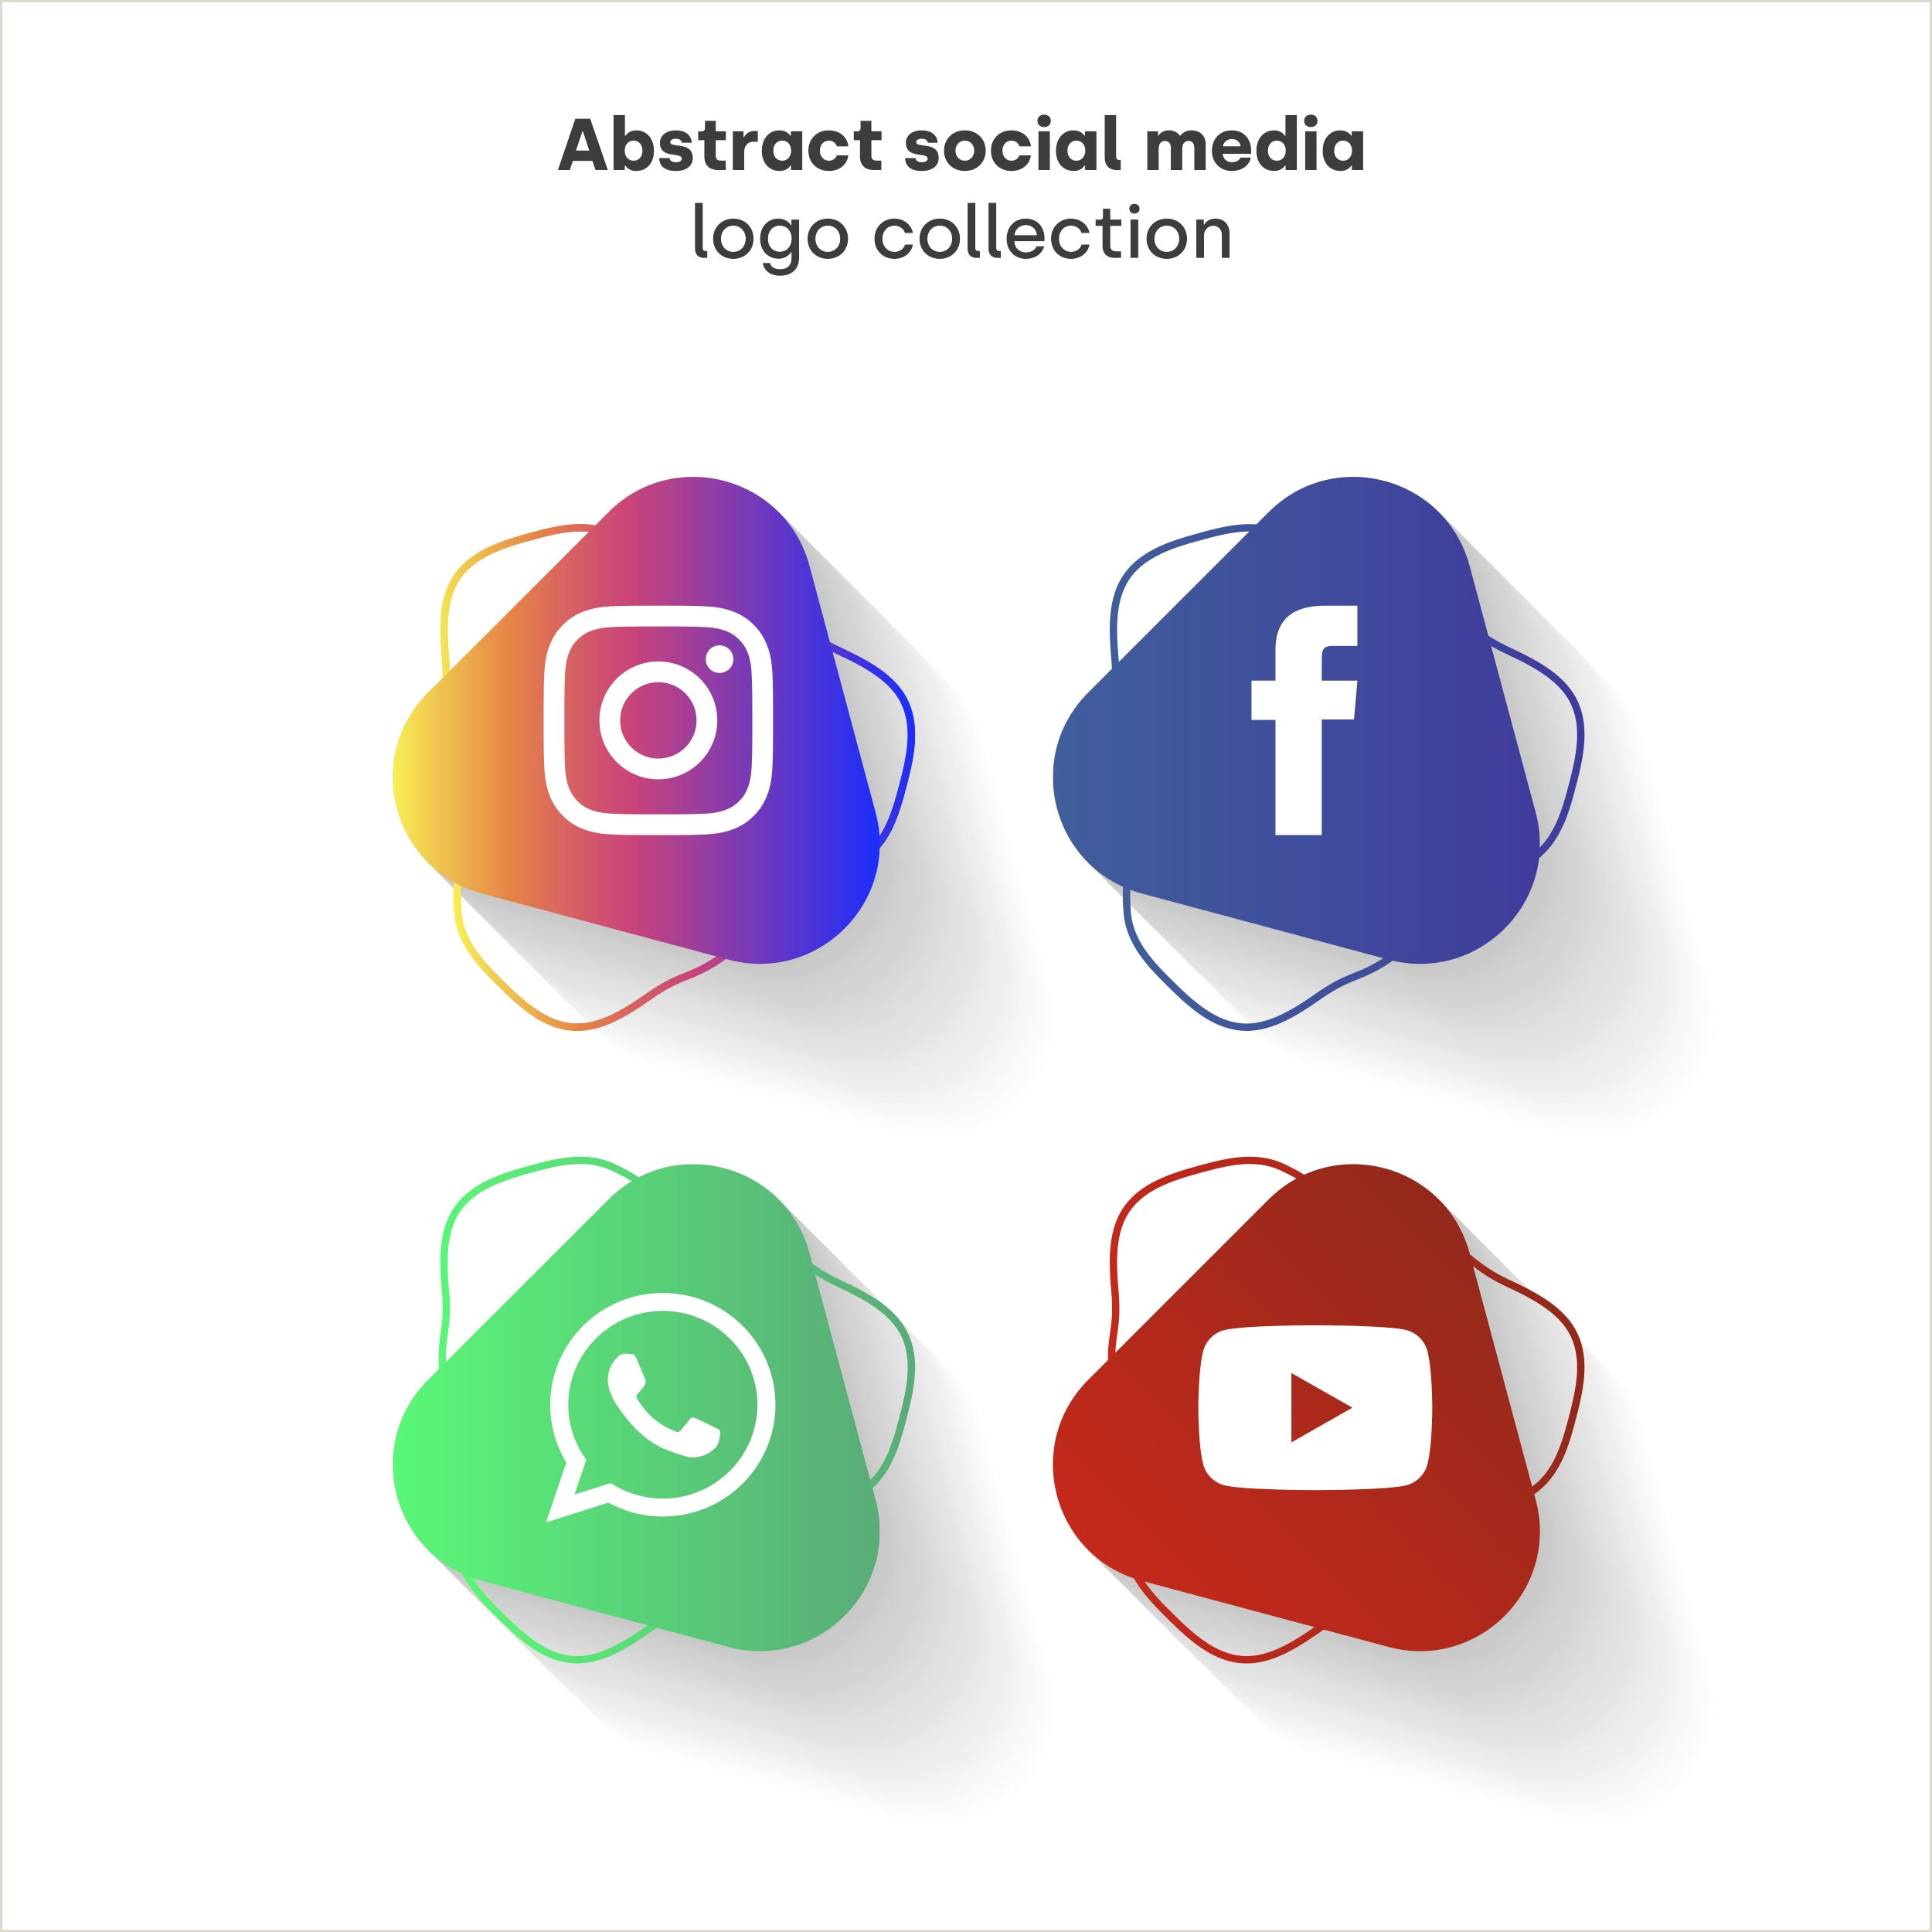 Facebook Logos For Business Cards Download Abstract Social Media Logo Collection For Free